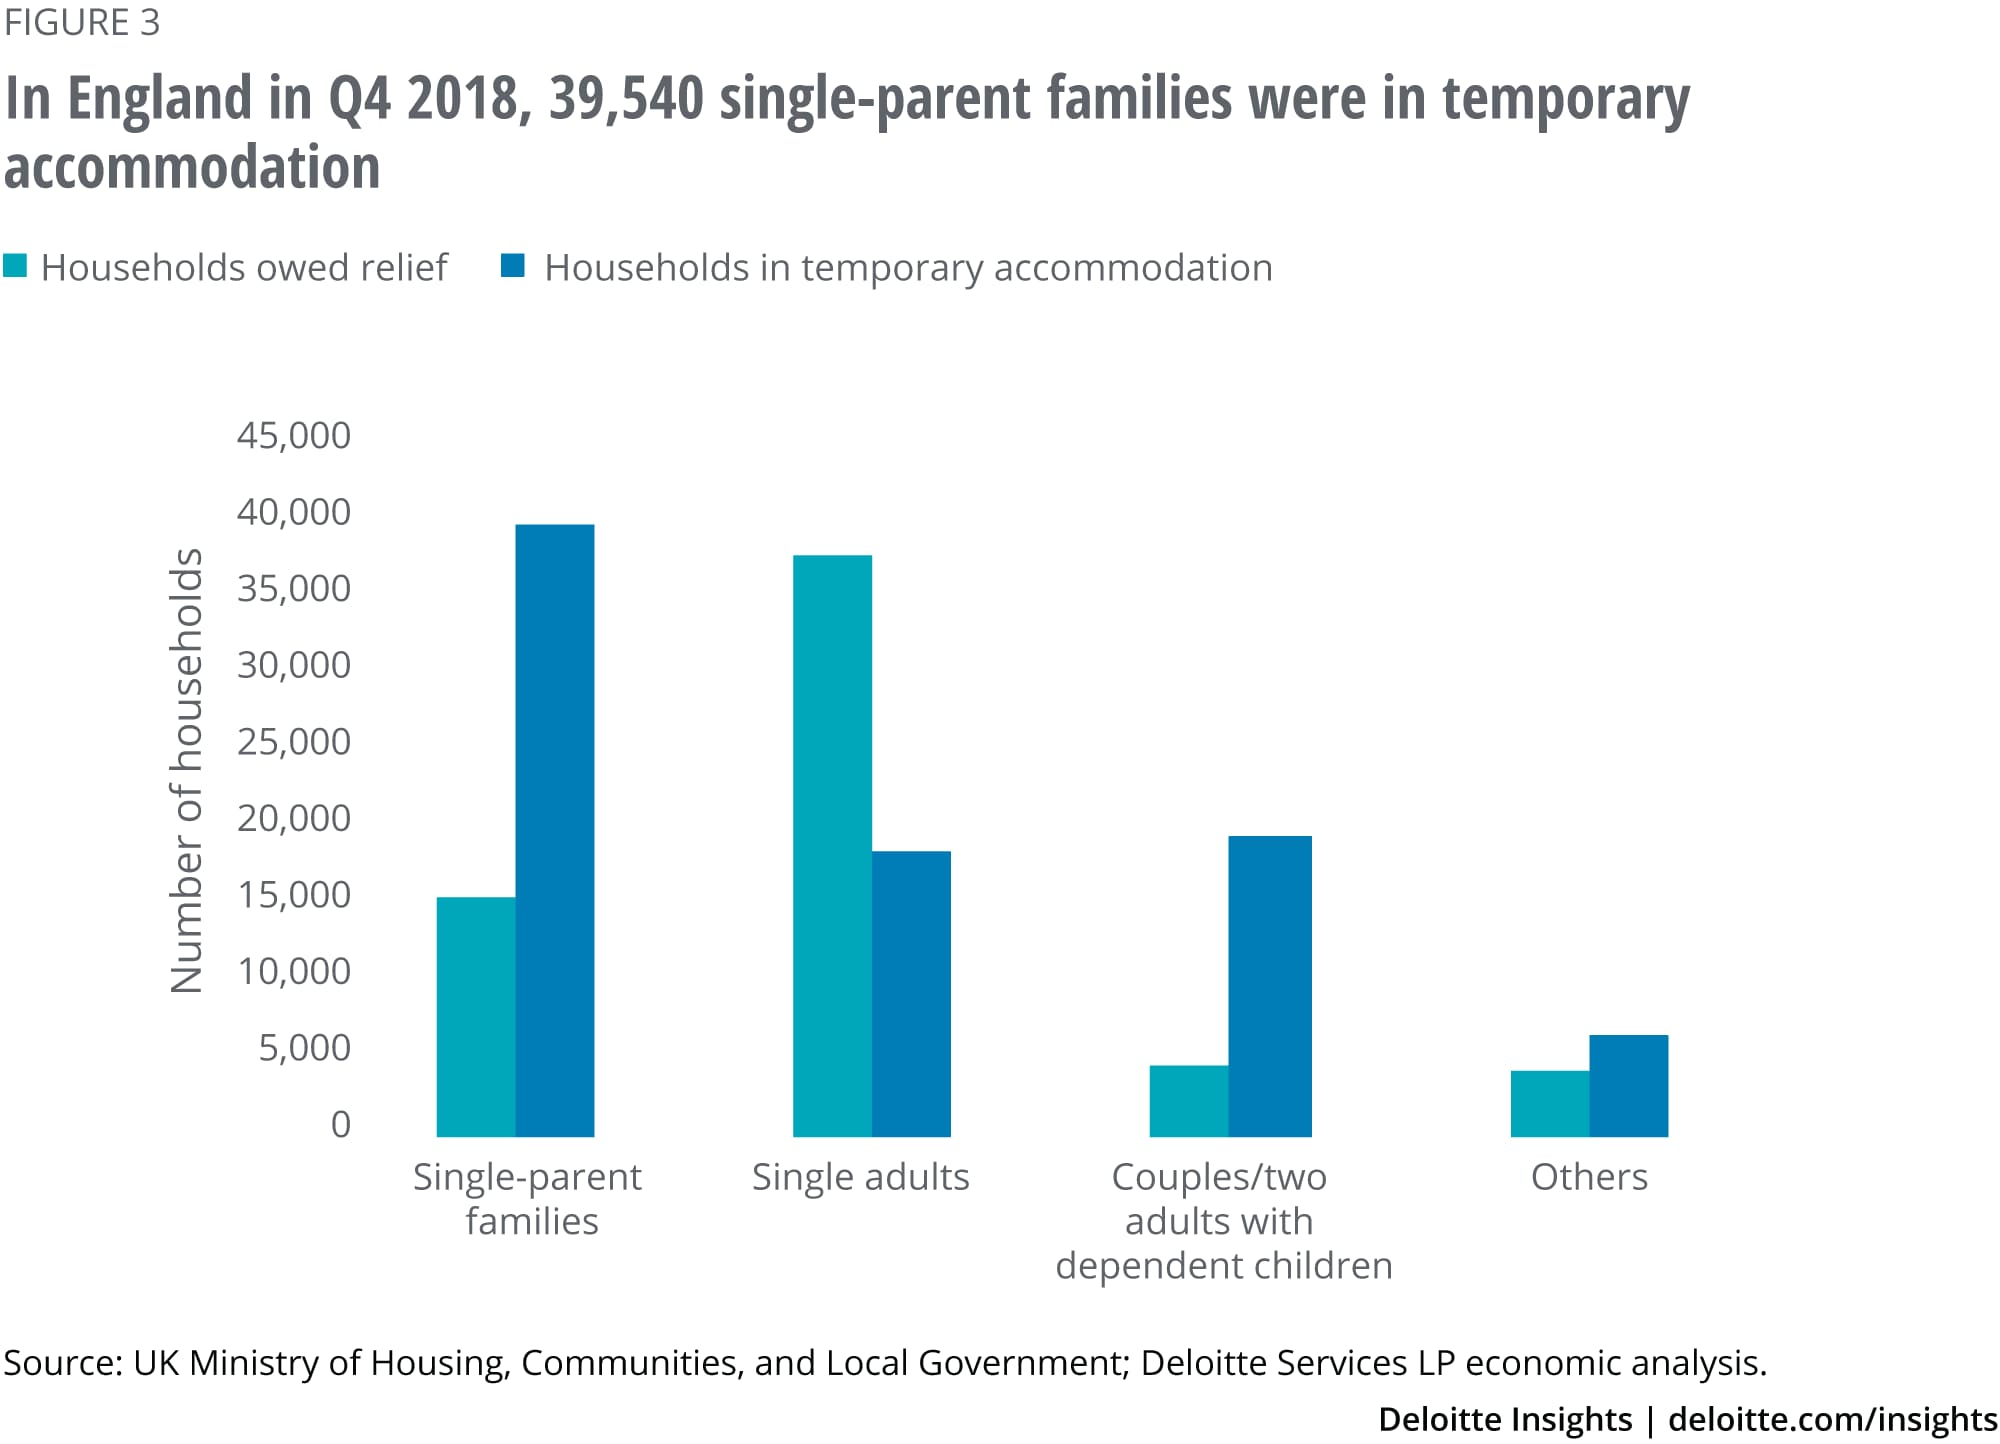 In England in Q4 2018, 39,540 single-parent families were in temporary accommodation